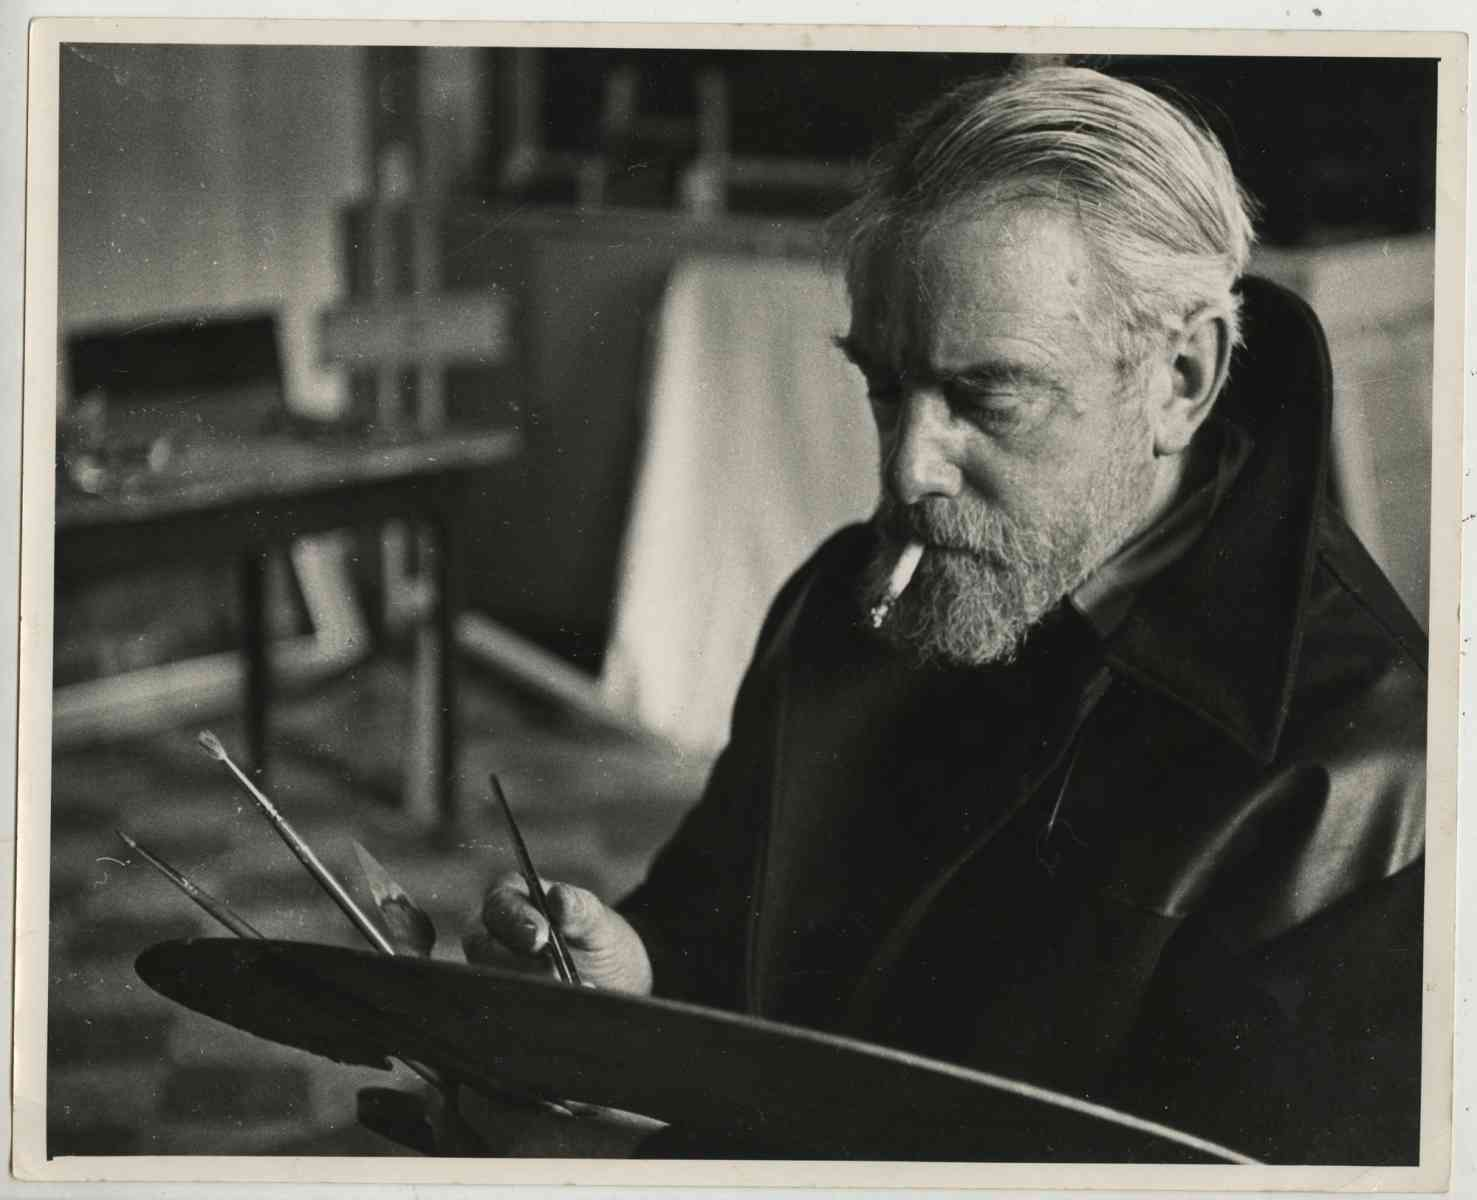 Reginald Brill Principal of Kingston School of Art in his Knights Park studio - Knights Park in the 1960s